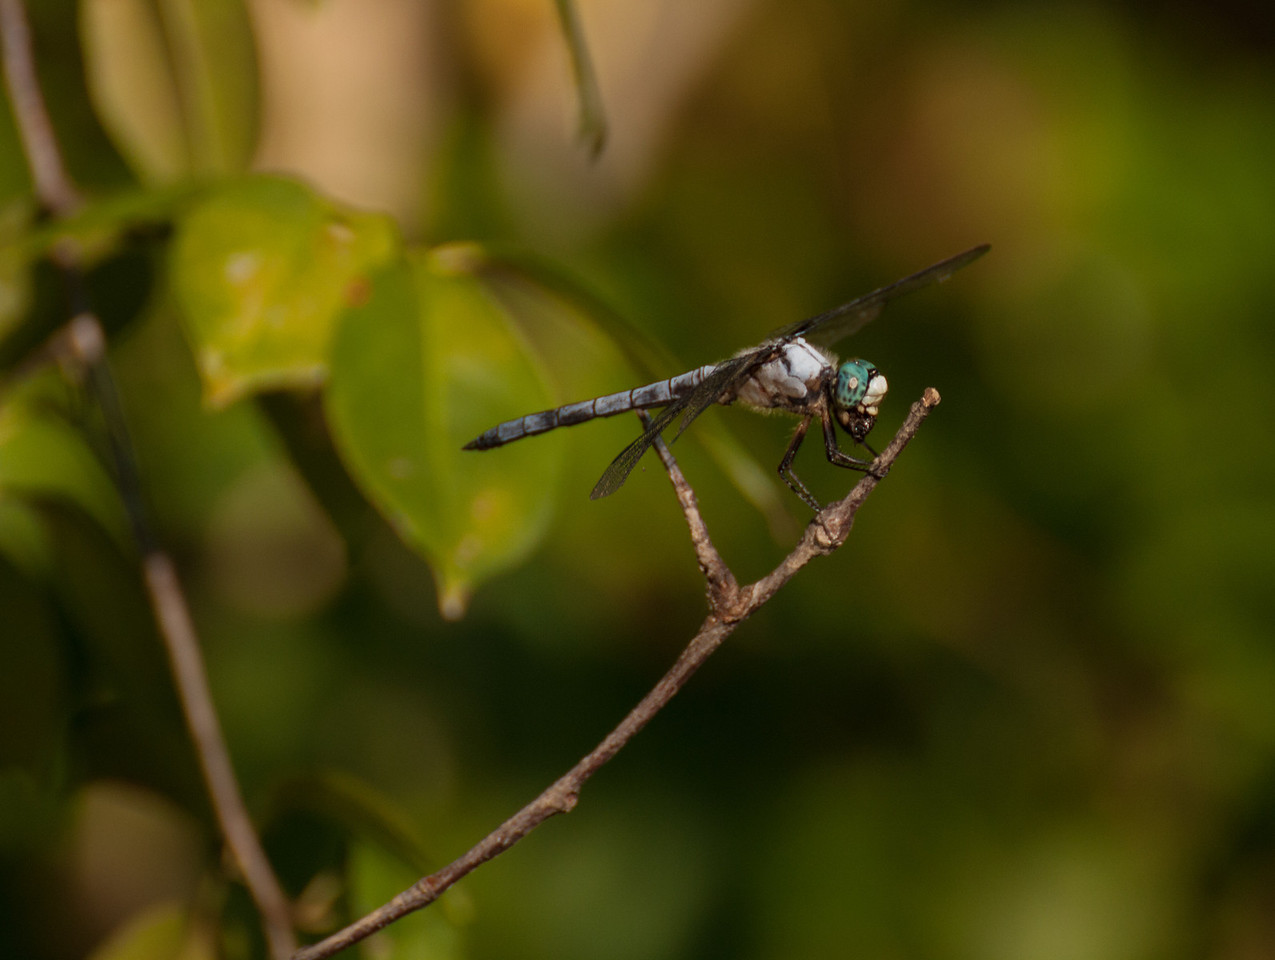 Blue skimmer dragonfly eating an insect.  Almost all gone.